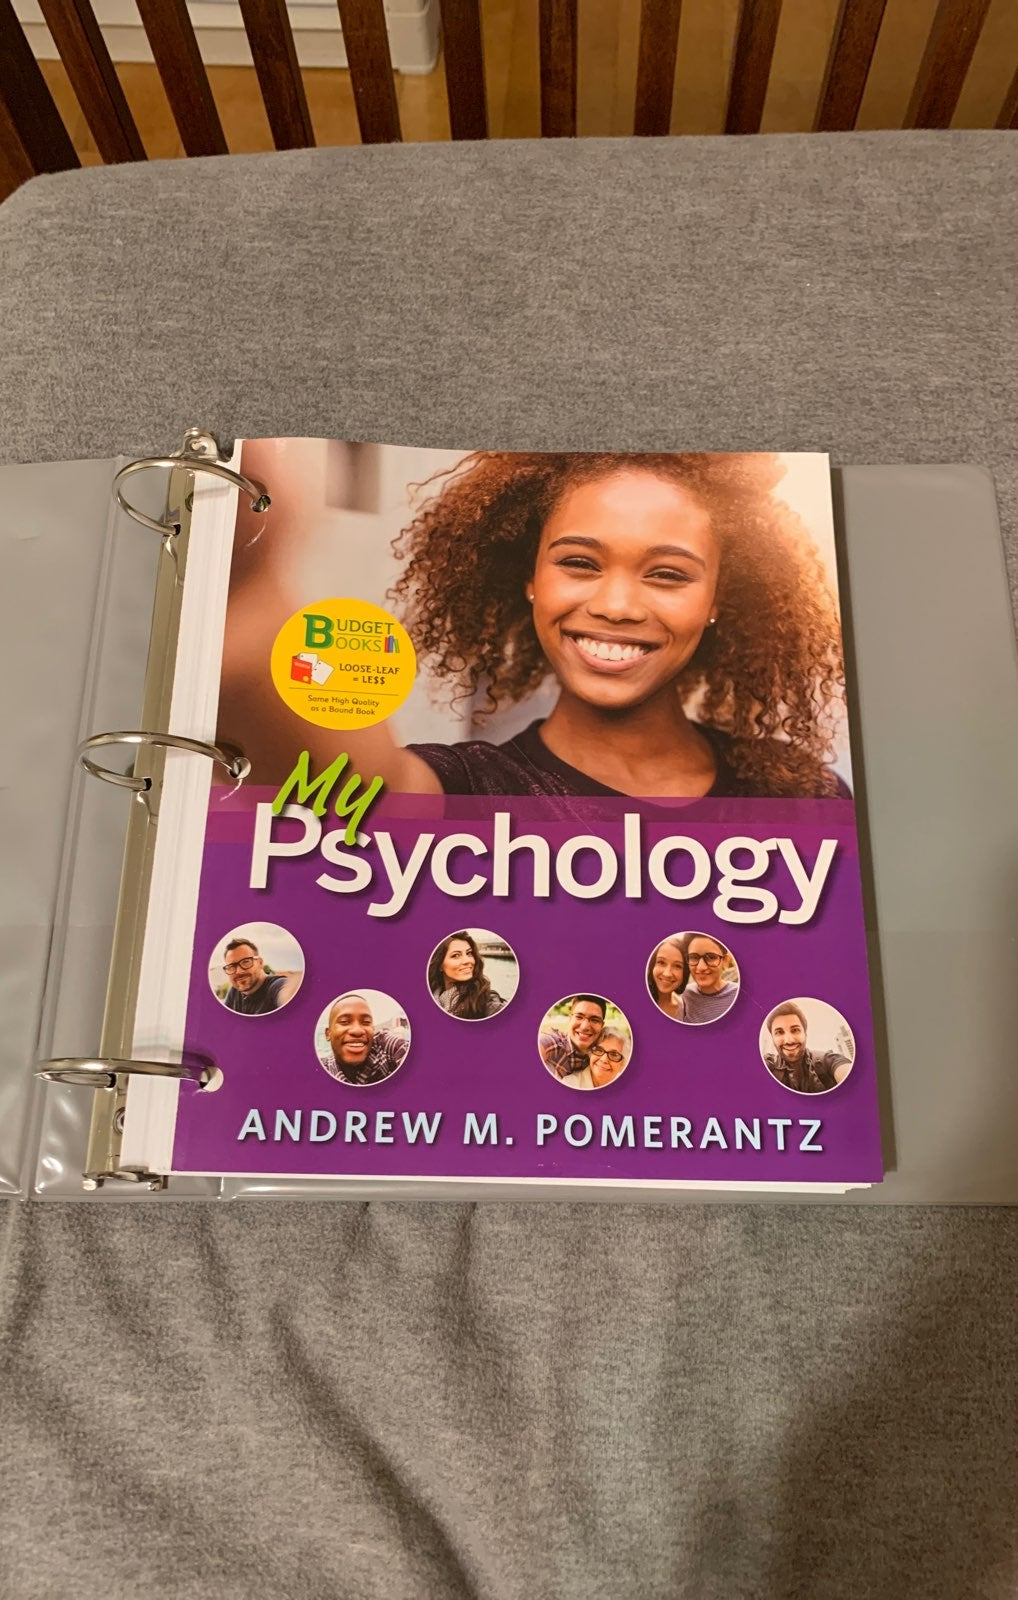 My Psychology Andrew Pomerantz textbook